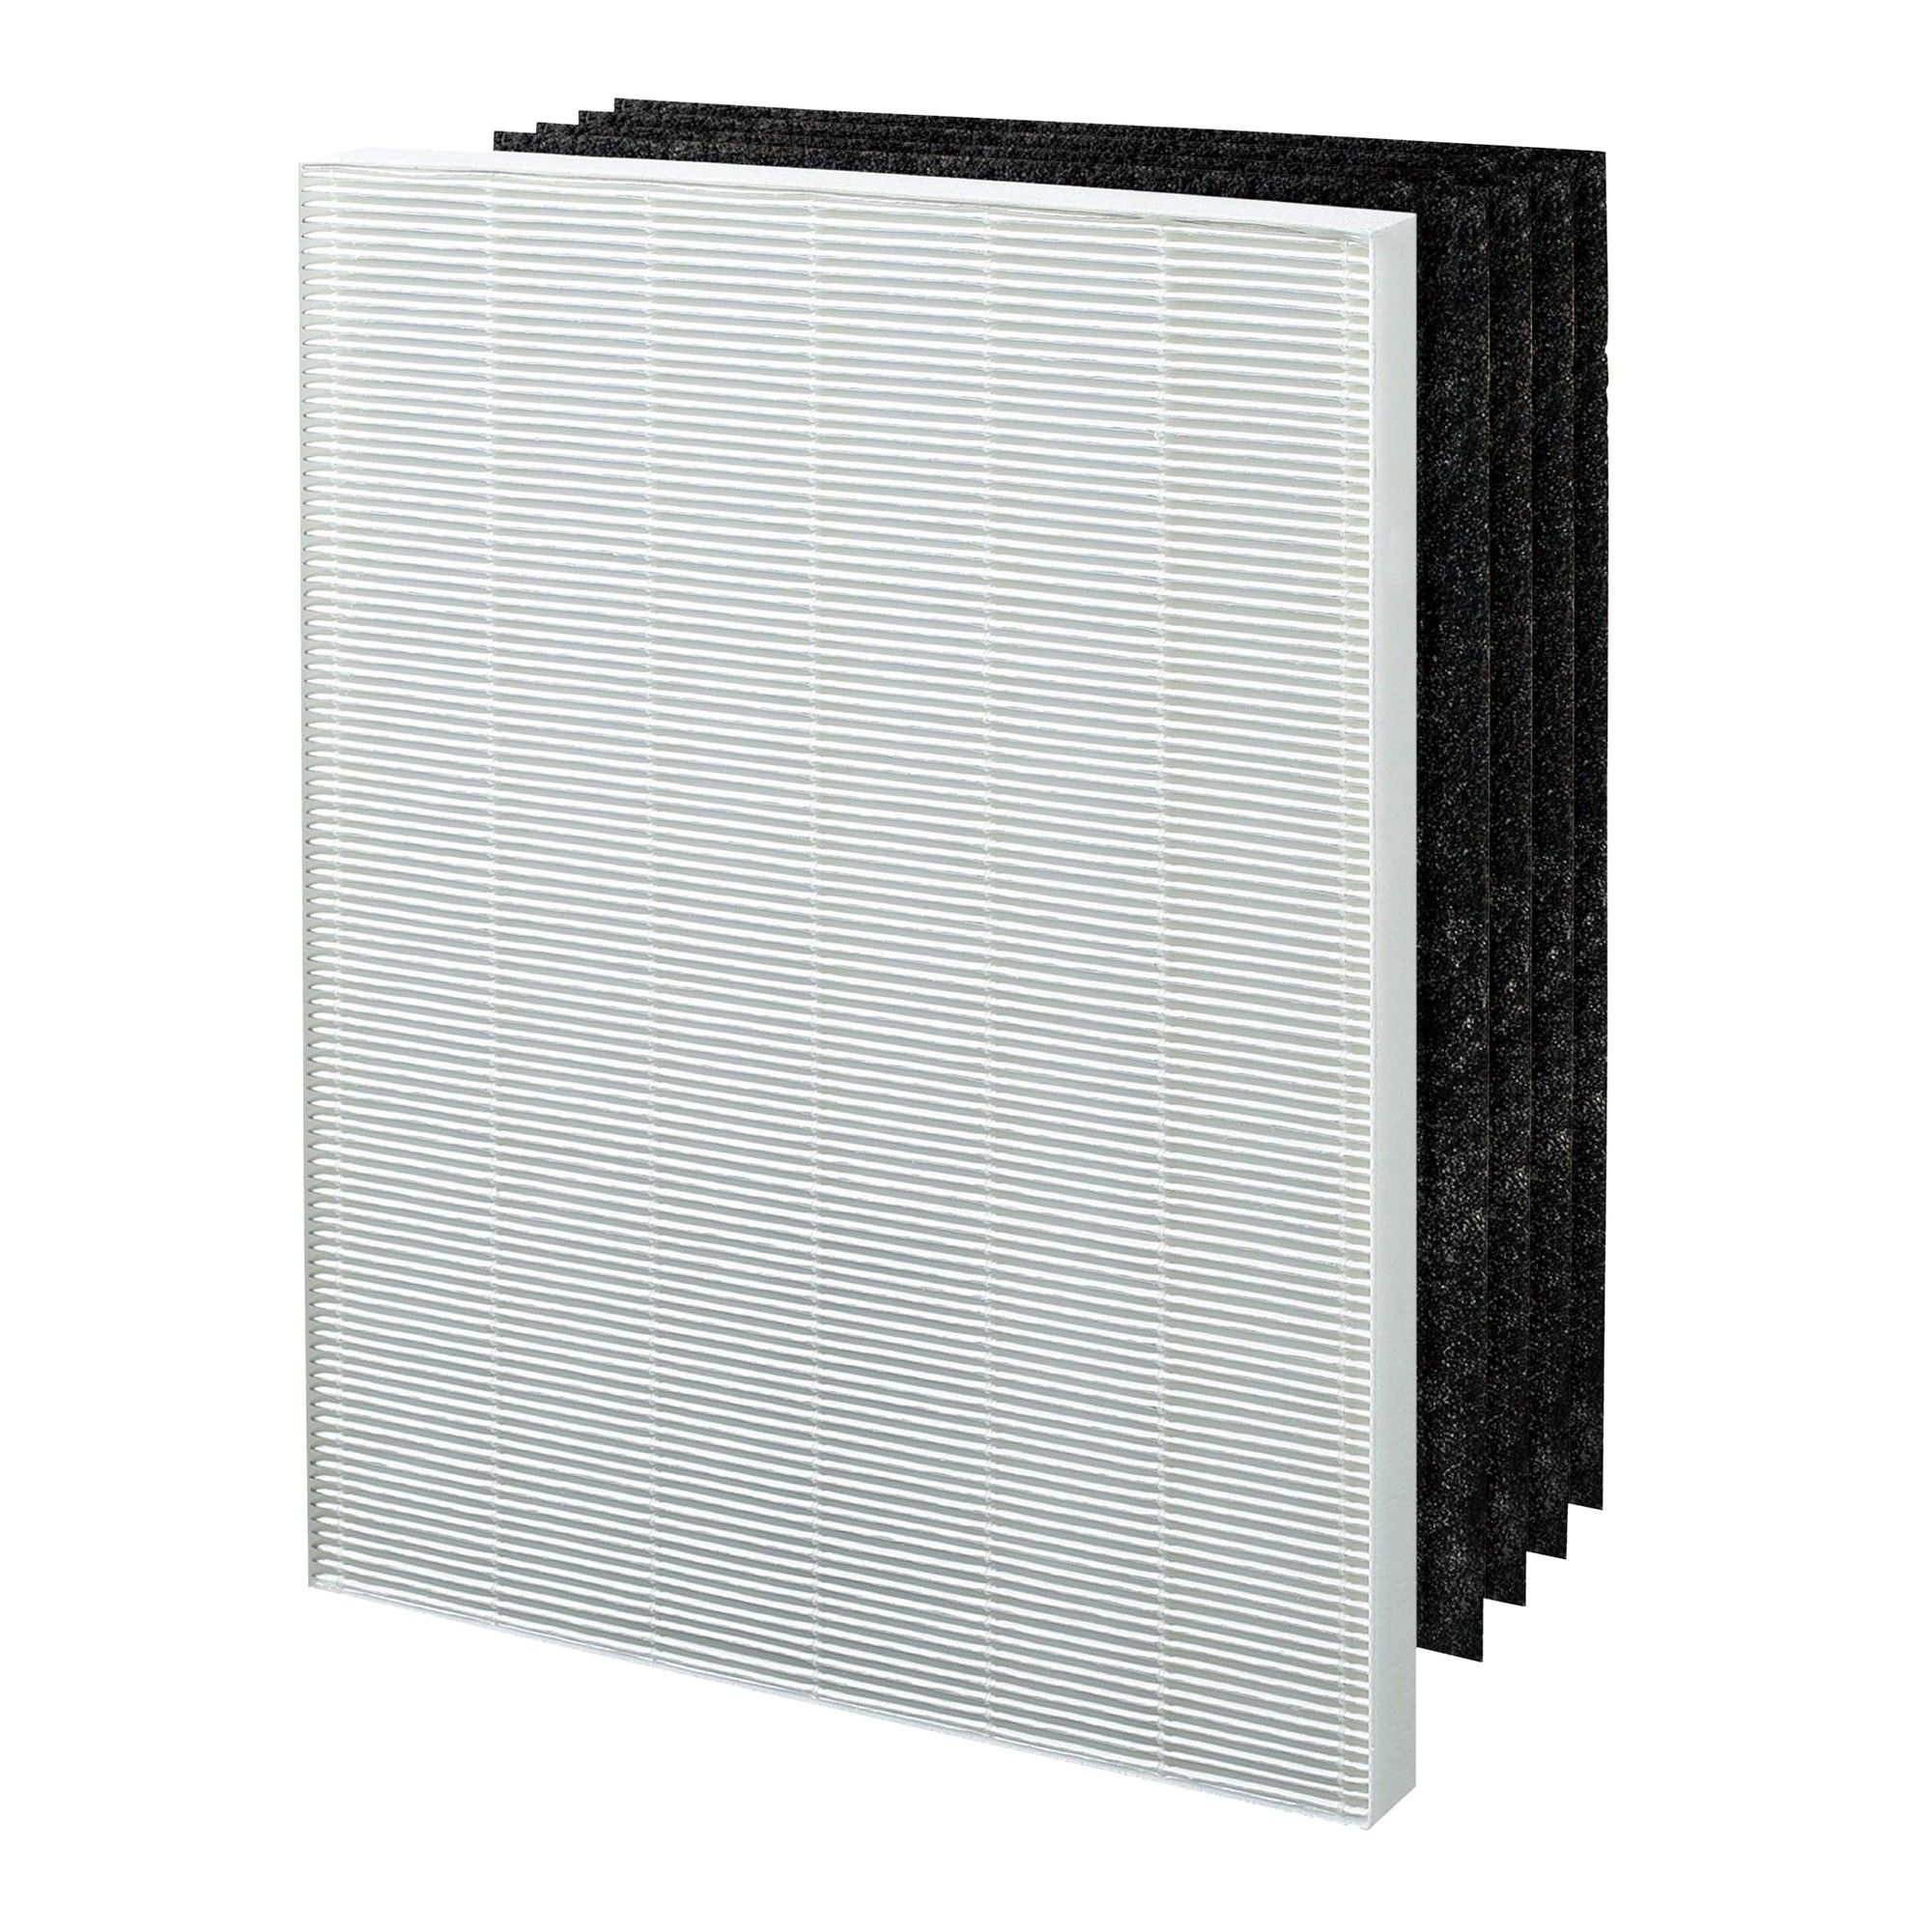 Winix True Hepa and Four Replacement Filters for model